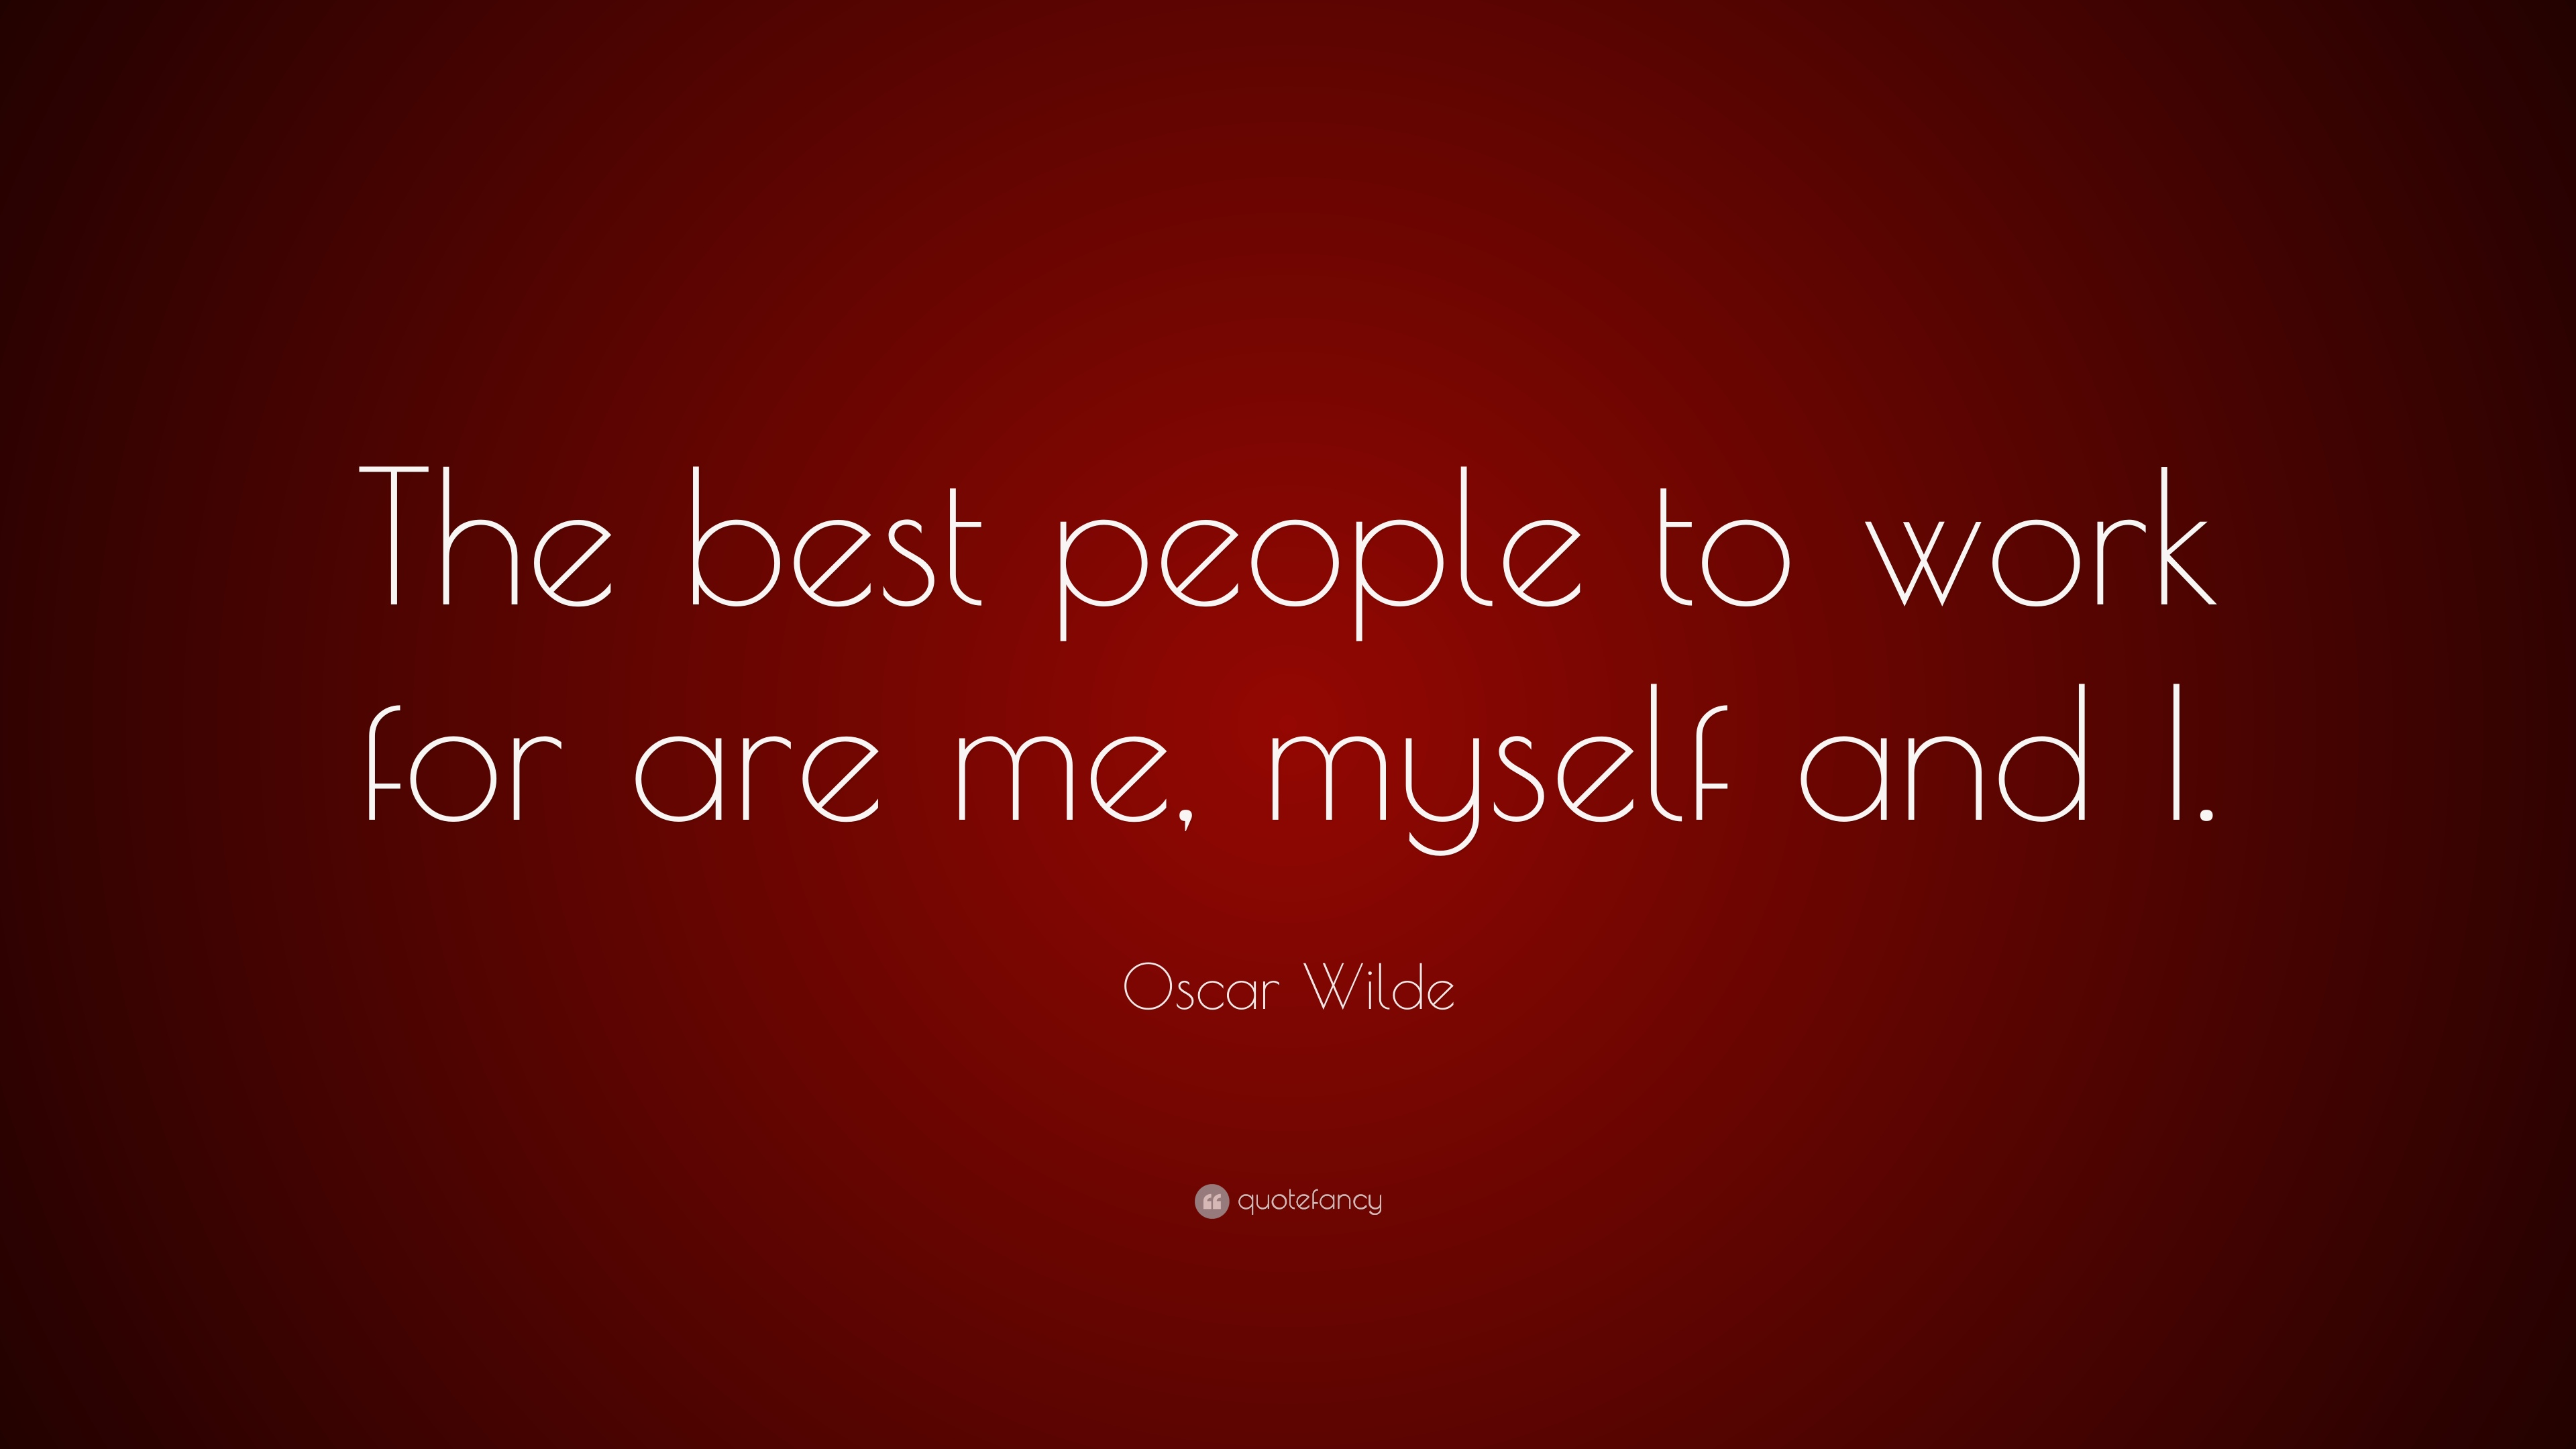 Oscar Wilde Quote The Best People To Work For Are Me Myself And I